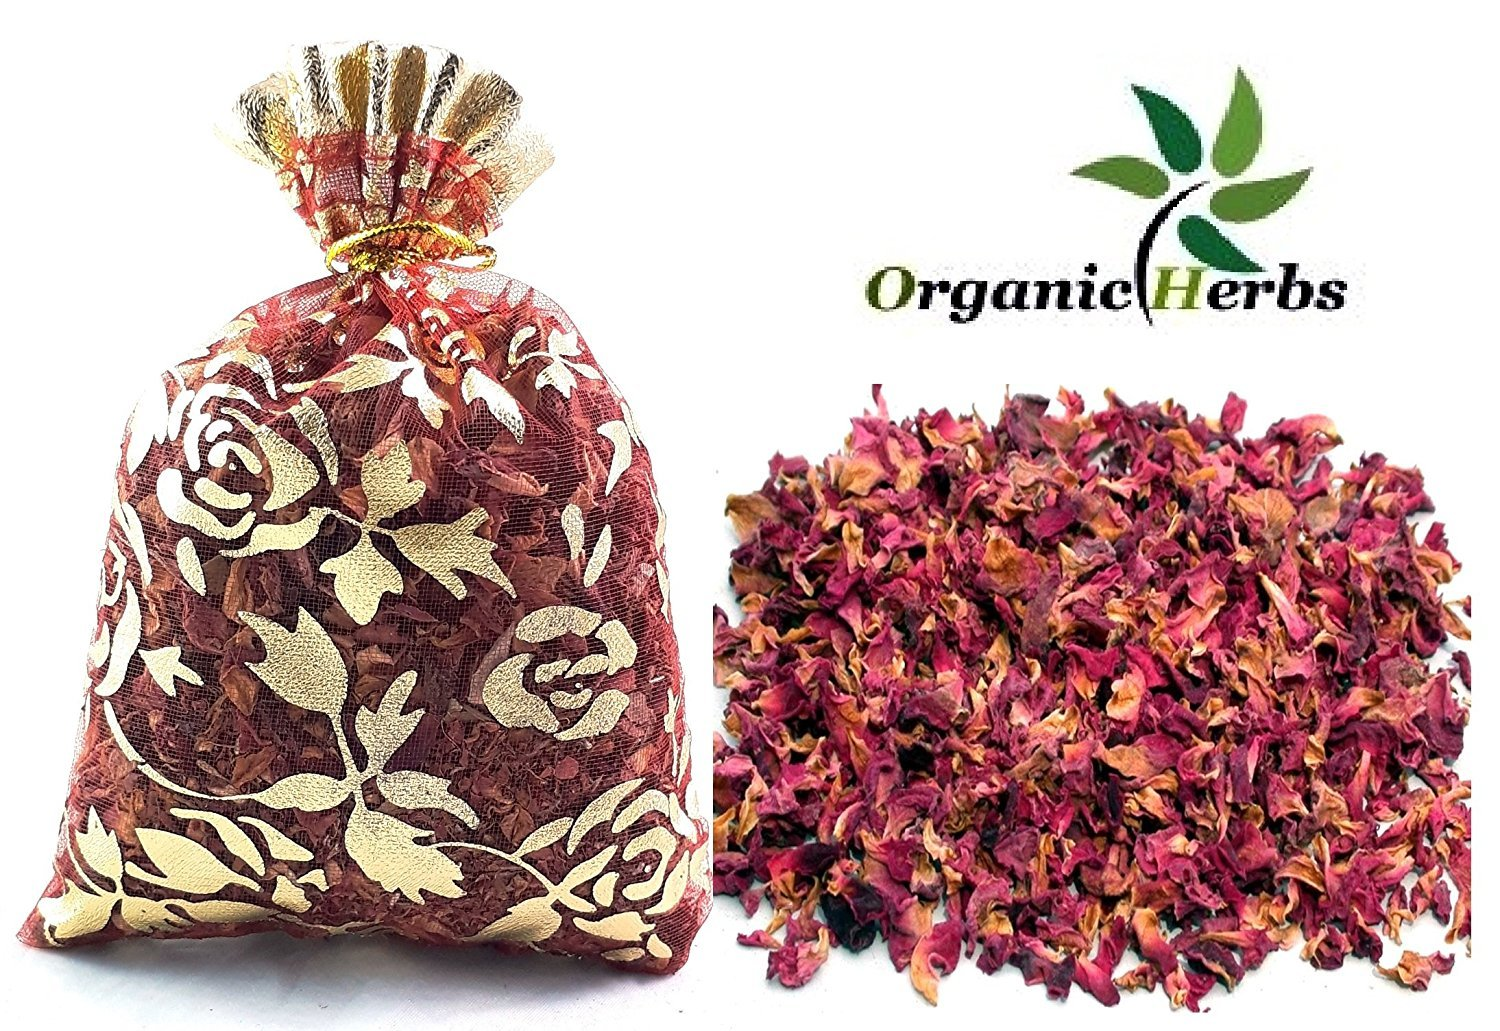 Organic Herbs (Pack of 20) 2x10g DRIED ROSE PETALS Potpourri Decor Organic Herbal Craft Car Perfume by Organic Herbs